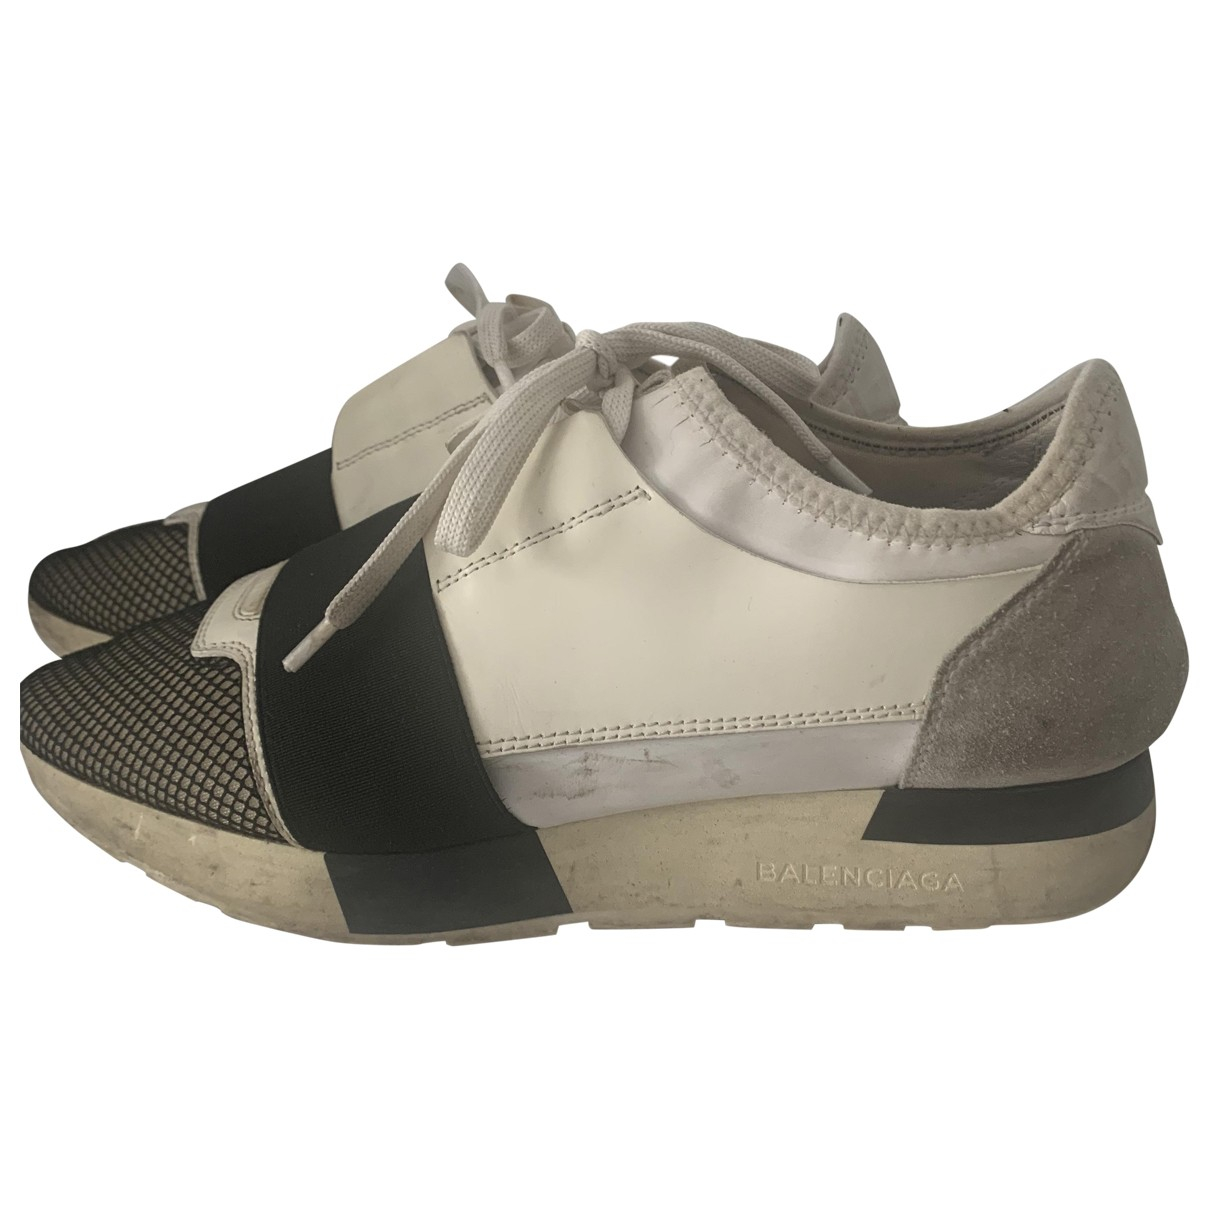 Balenciaga Race Beige Leather Trainers for Women 38 EU